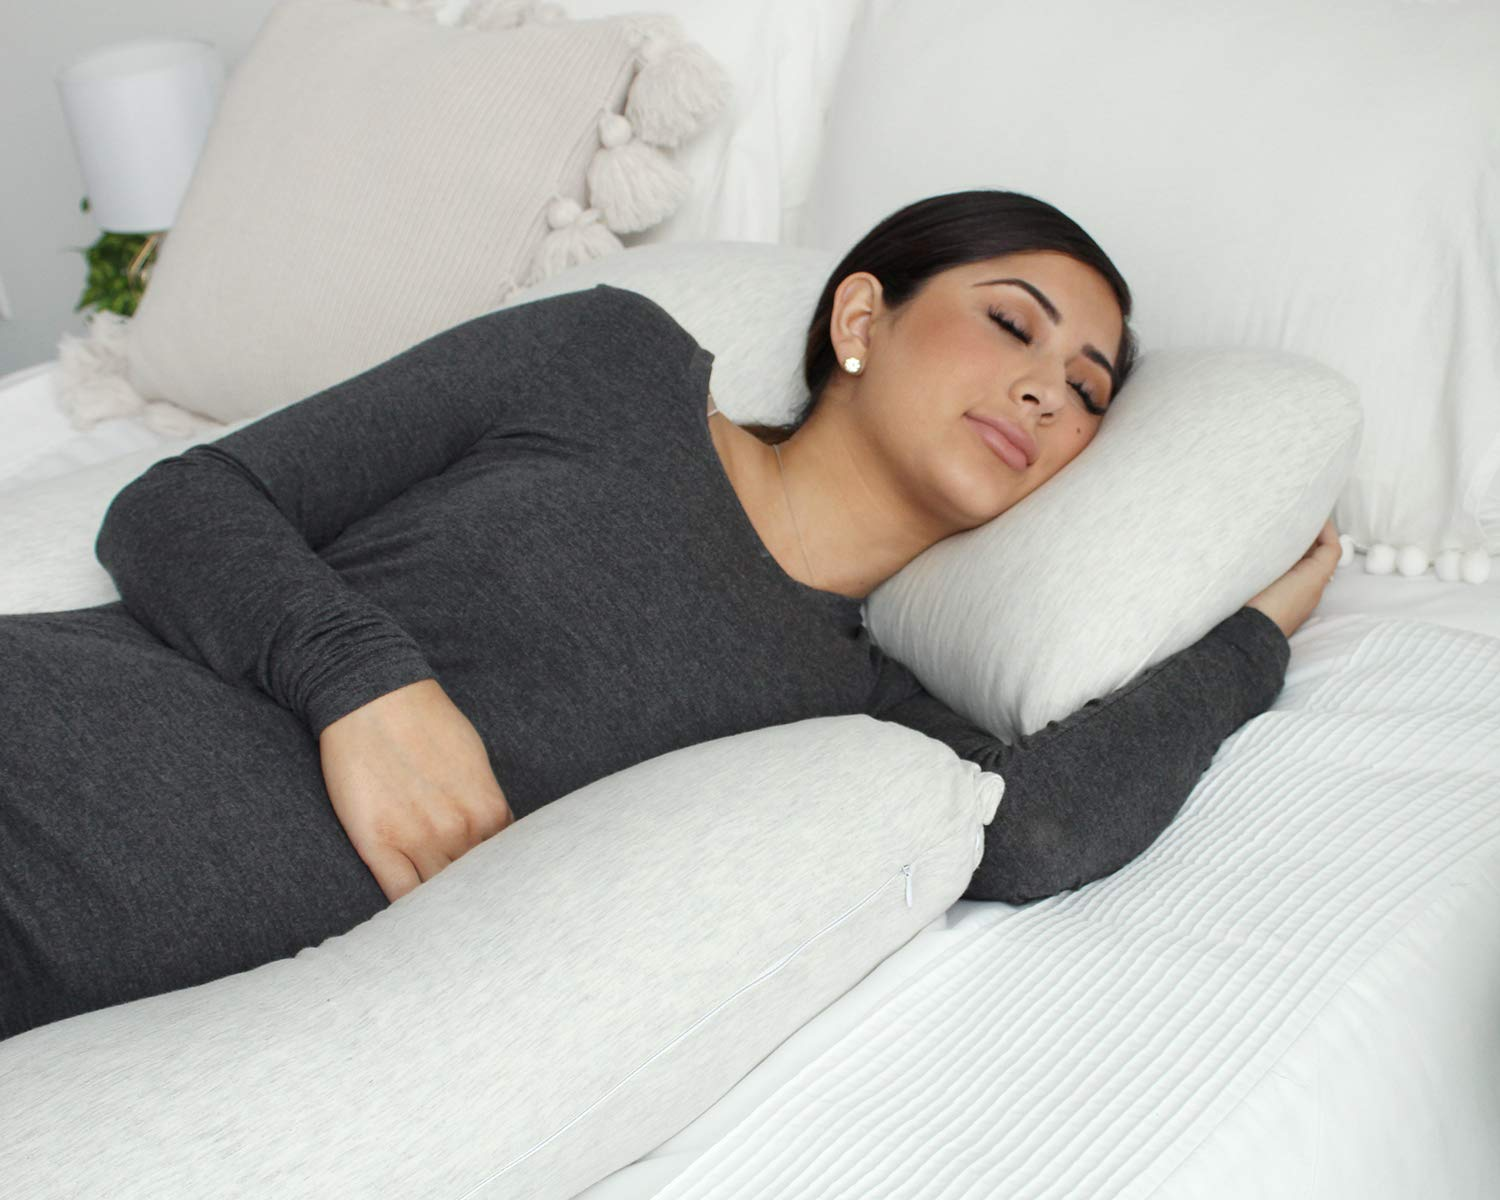 PharMeDoc Pregnancy Pillow, U-Shape Full Body Pillow and Maternity Support with Detachable Extension - Support for Back, Hips, Legs, Belly for Pregnant Women by PharMeDoc (Image #5)